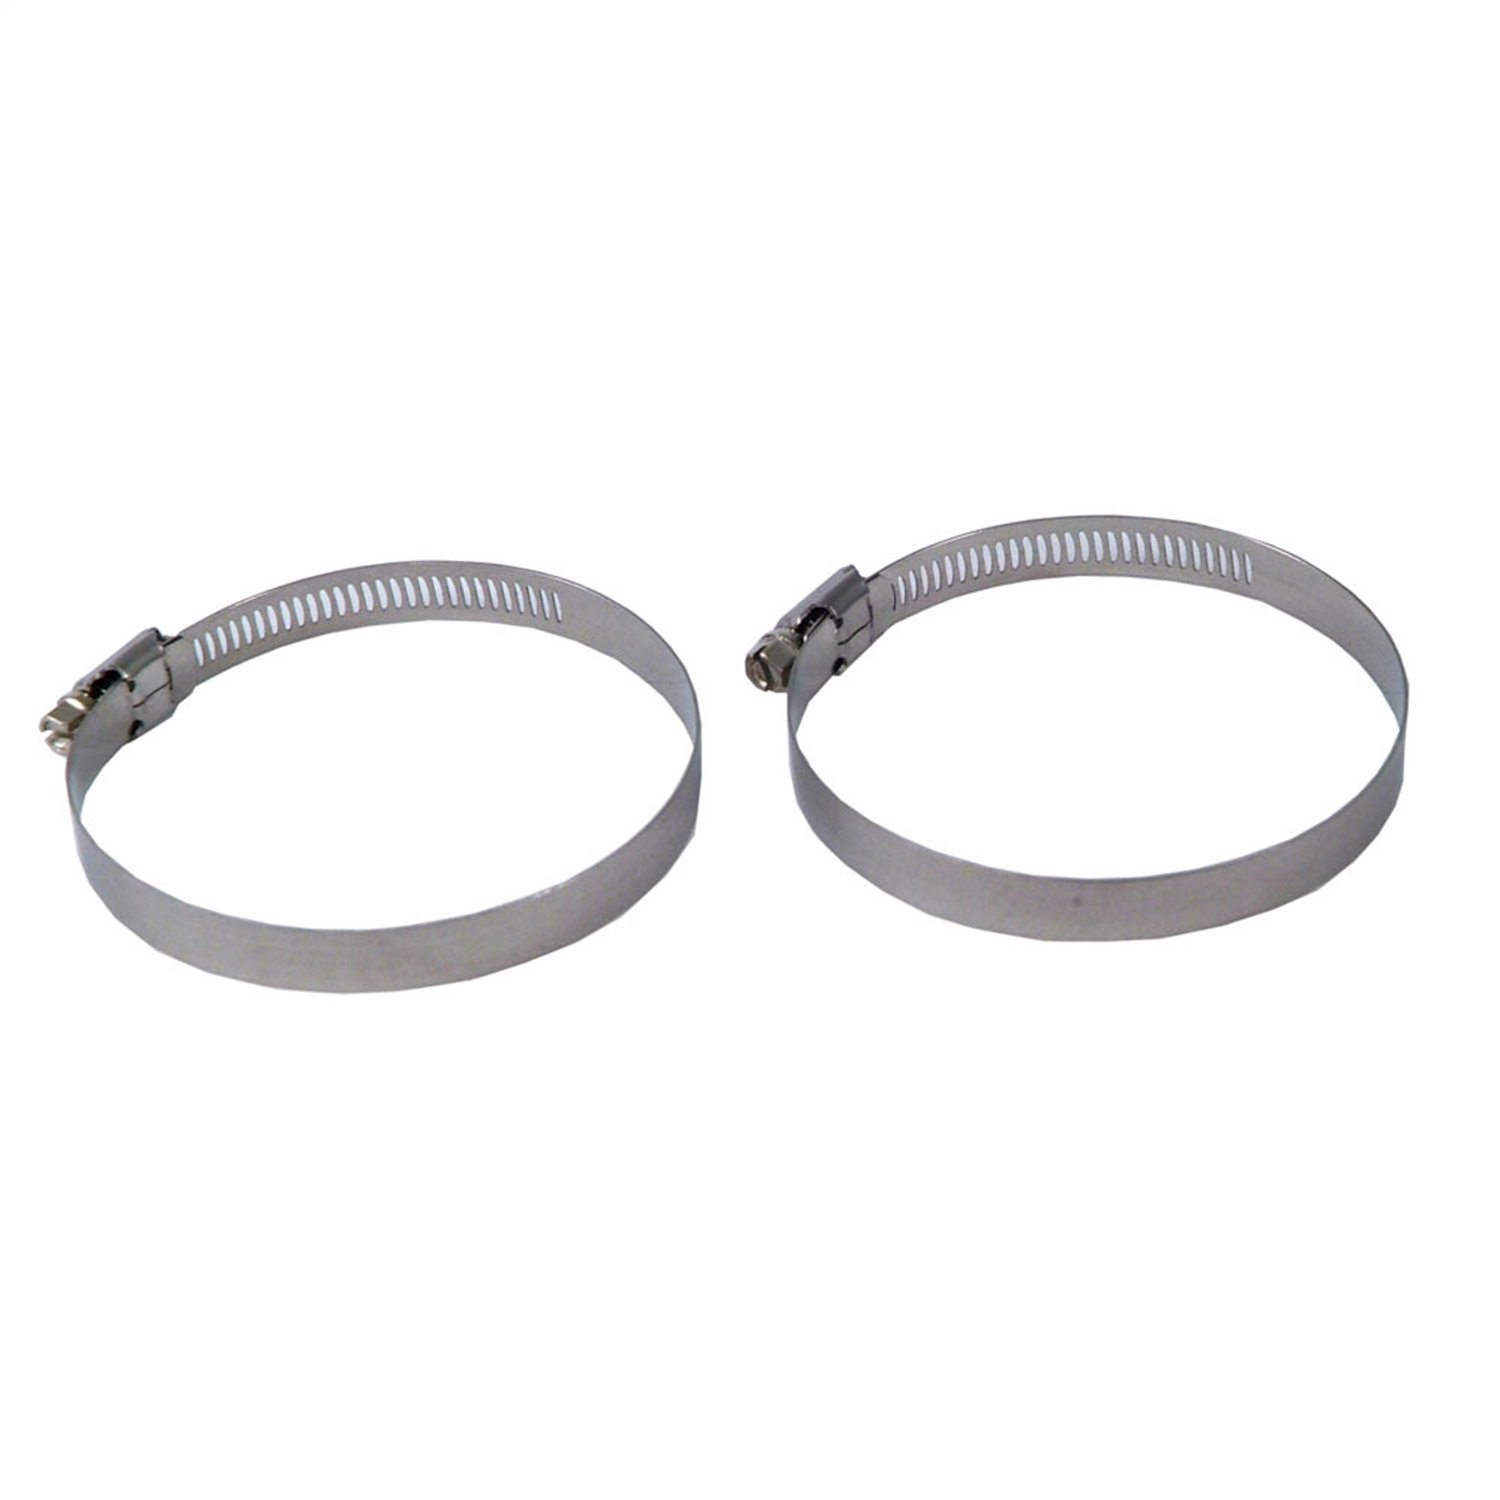 Spectre Performance 9504 3.5-Inch Hose Clamp - Pair